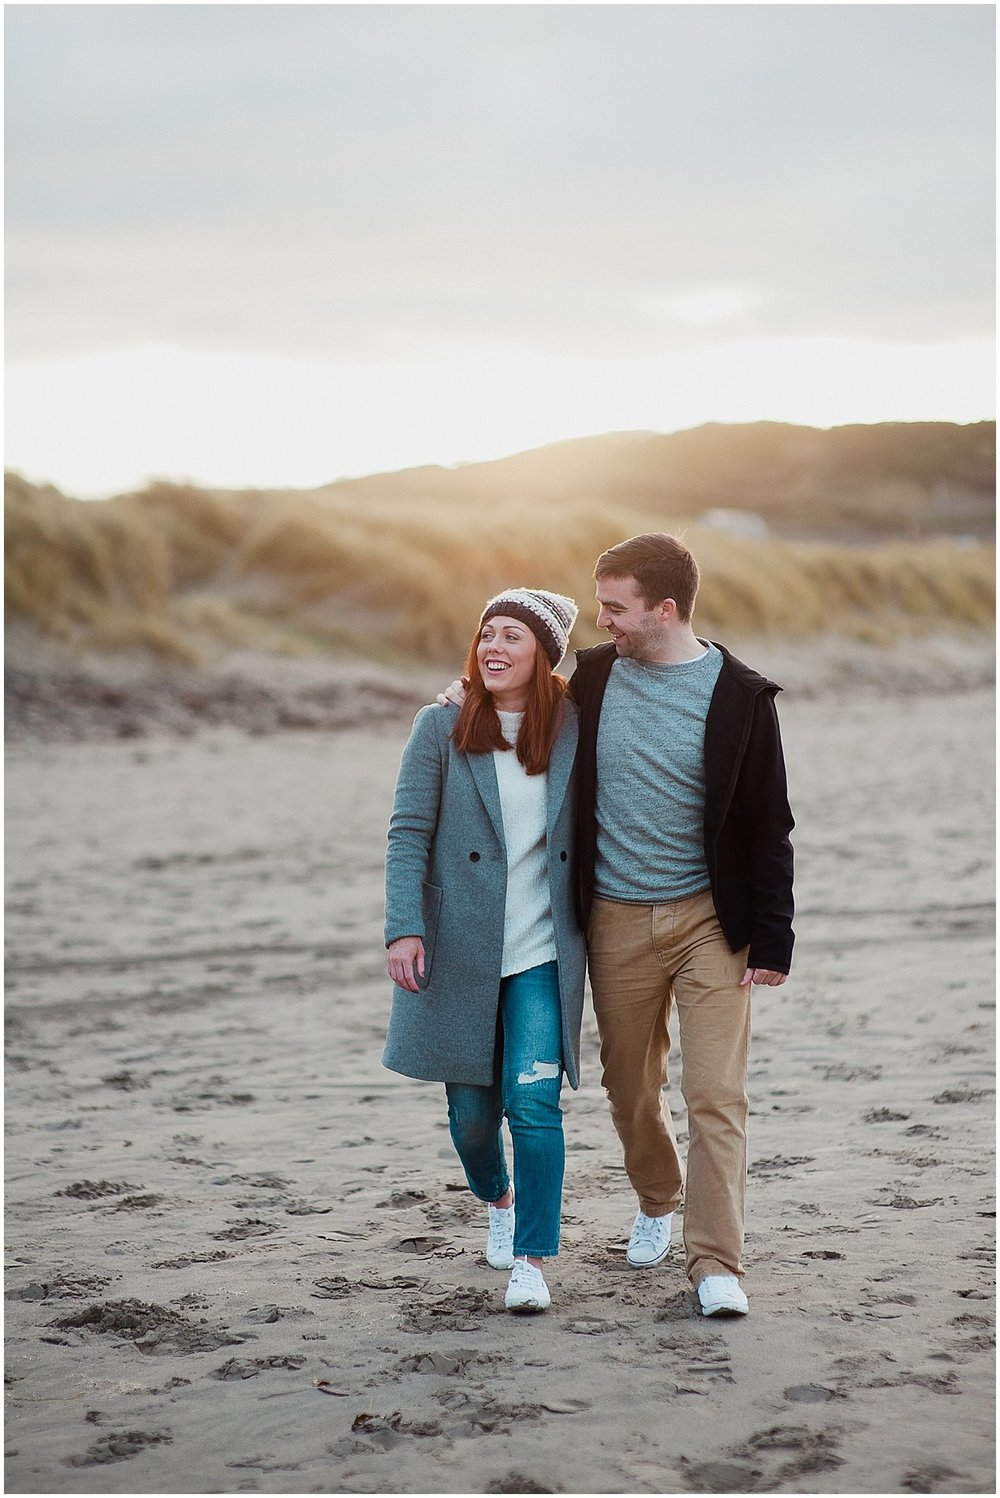 Sinead_Emmet_Rossnowlagh_Beach_pre_wedding_jude_browne_photography_0002.jpg